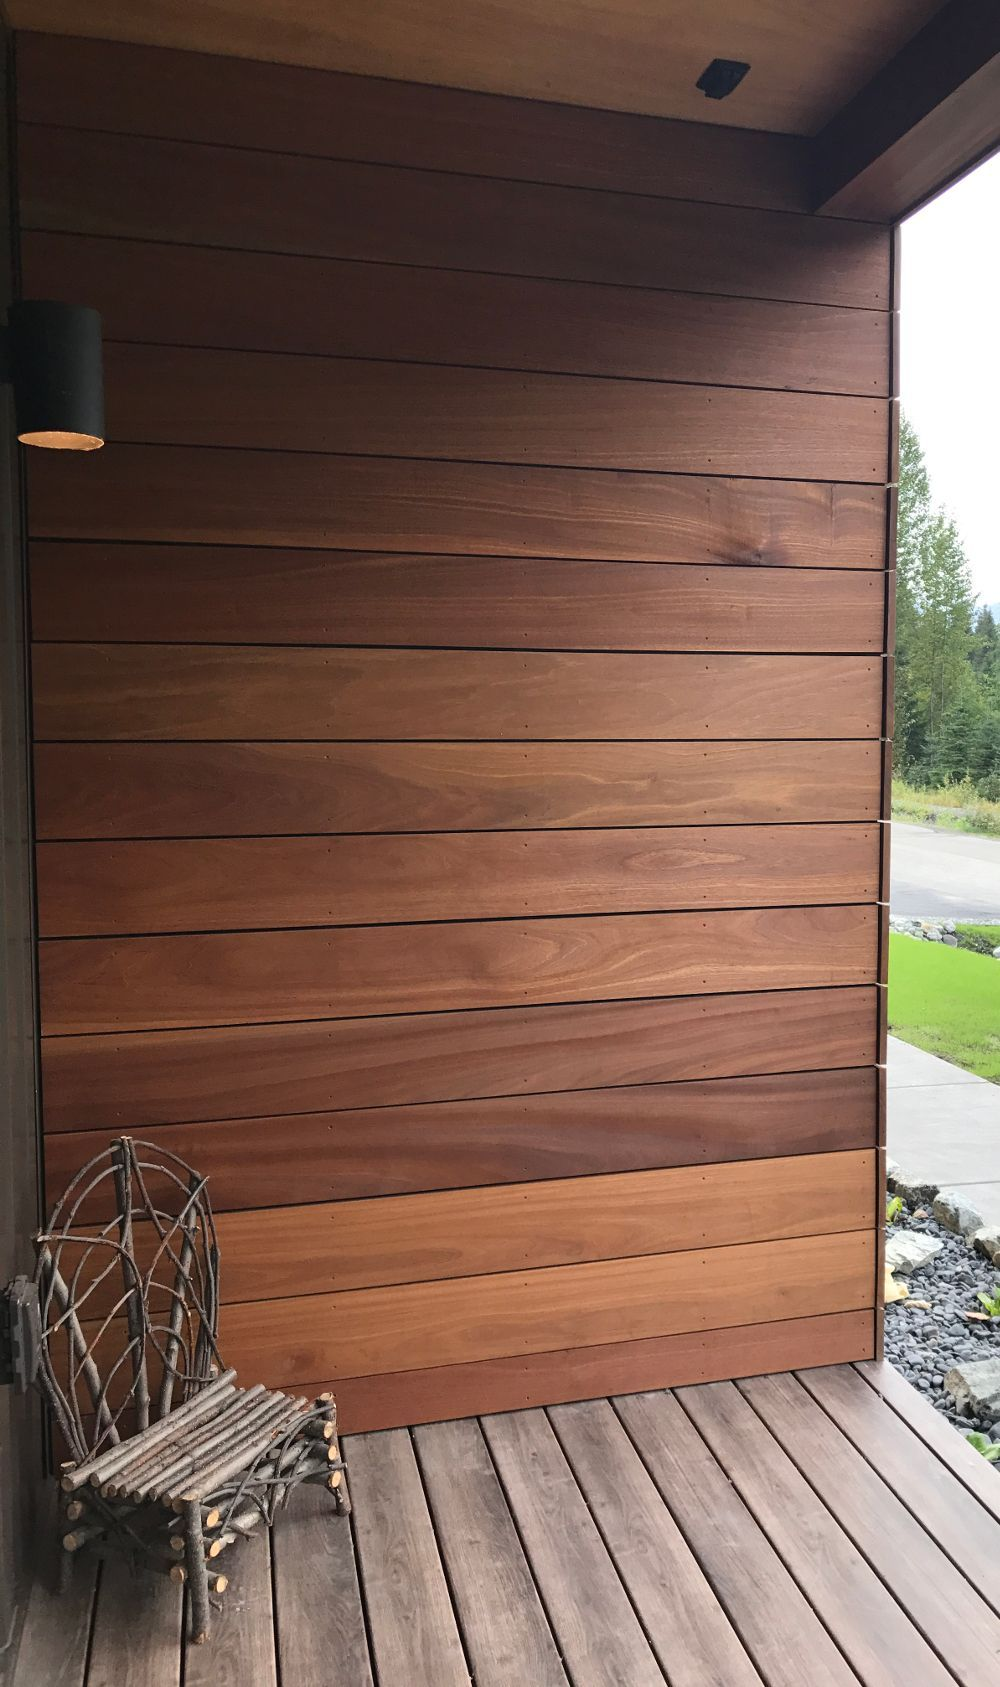 Beautiful Batu Mahogany Hardwood Siding On This Home Carries Into The Front Porch Natural Wood Siding In 2020 Wood Siding Exterior House Exterior Exterior Wood Stain